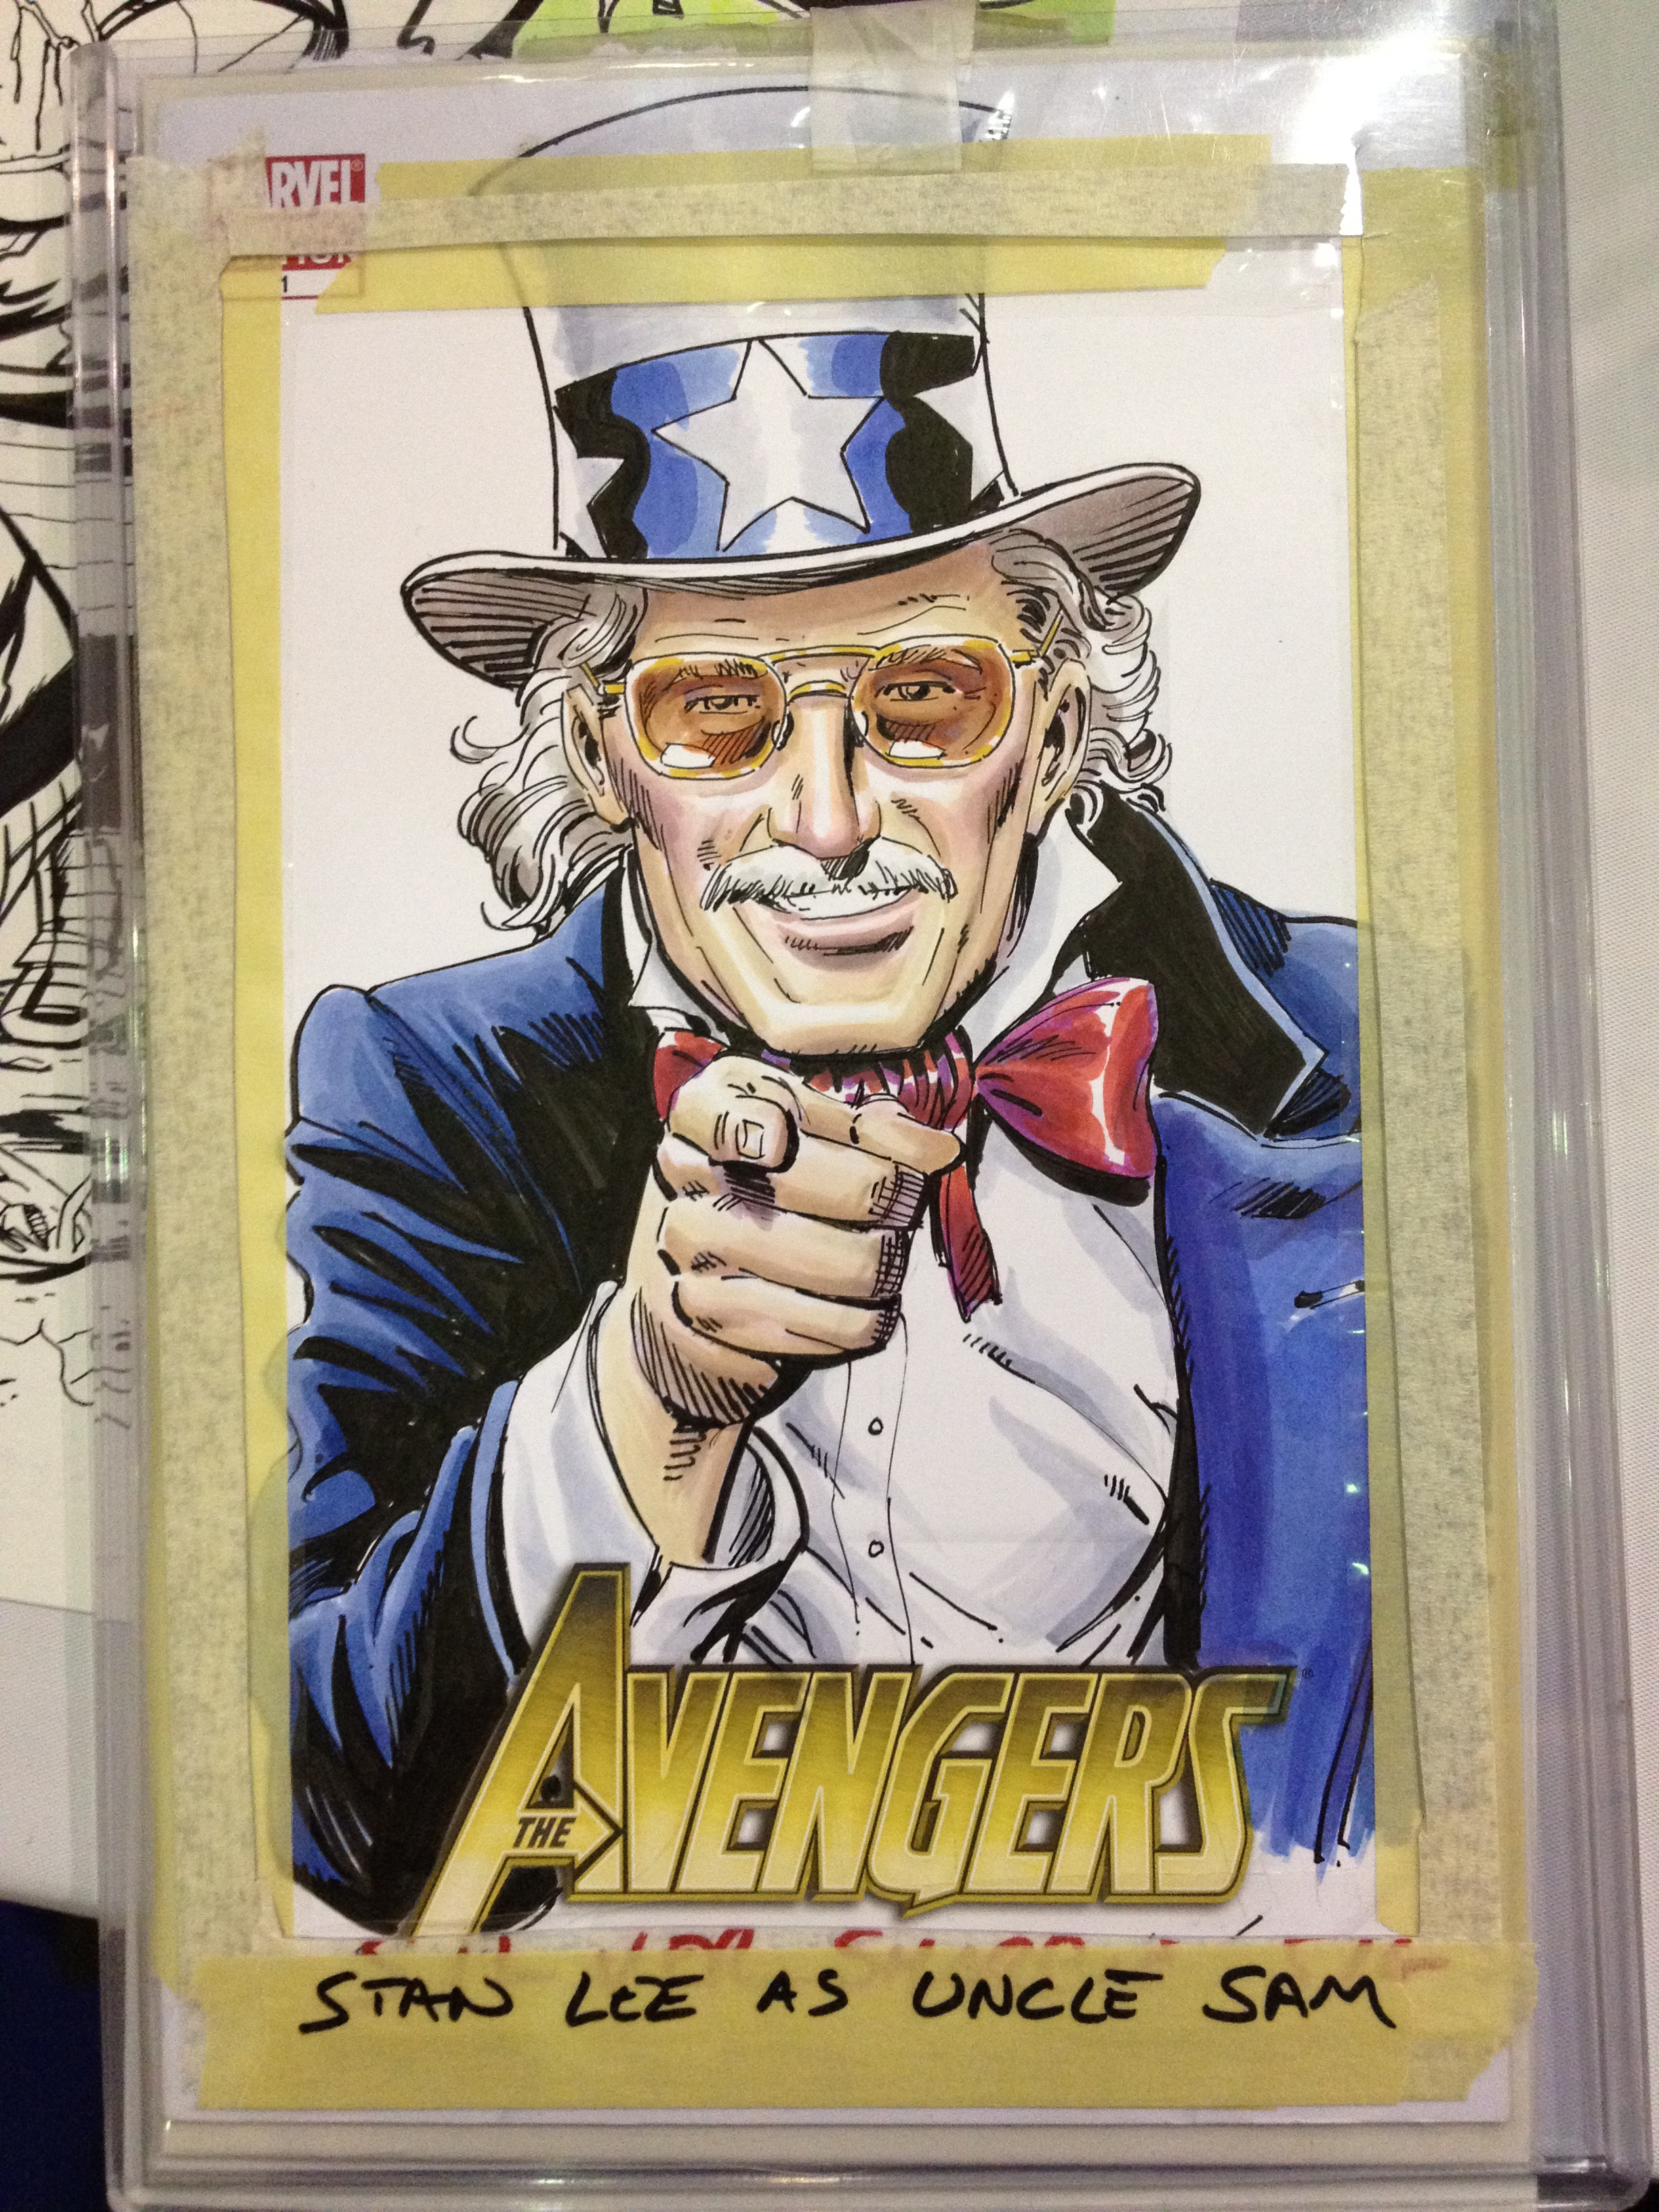 Stan Lee as Uncle Sam